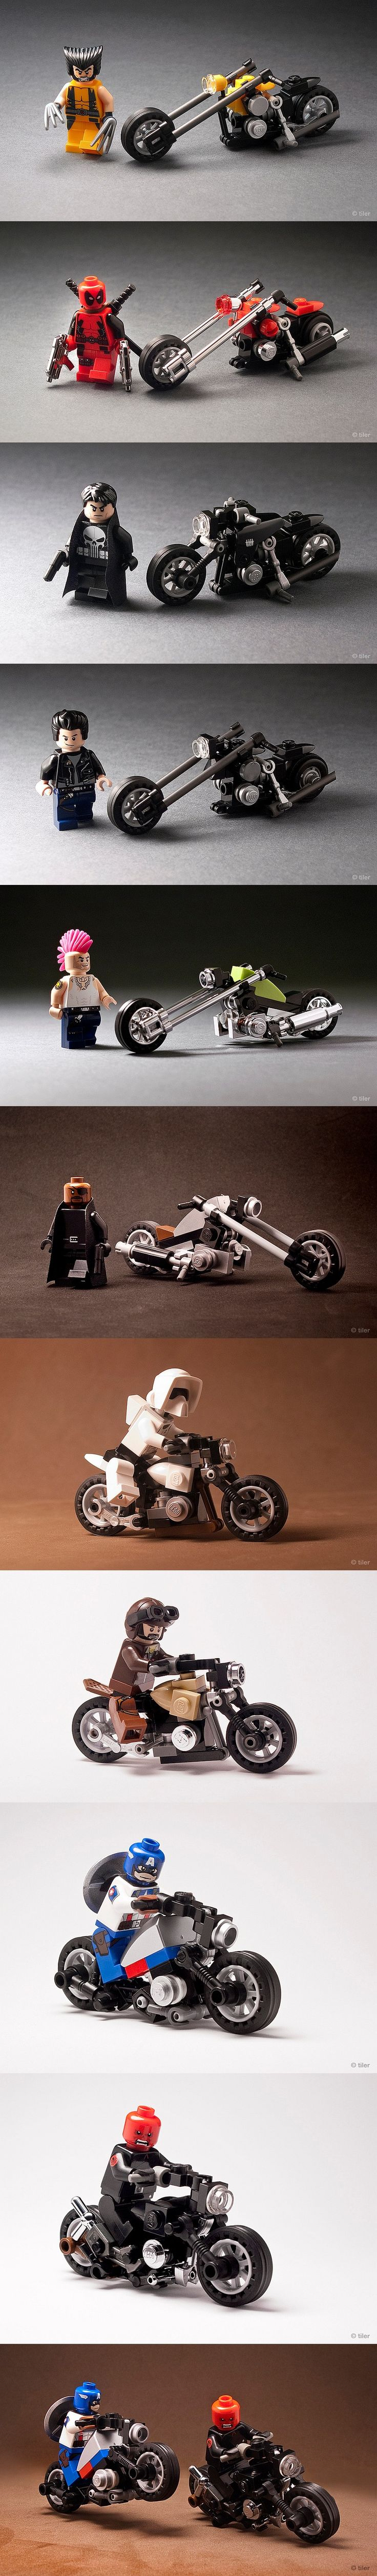 AMAZING LEGO Bikes with wolverine, deadpool,ghost rider ....